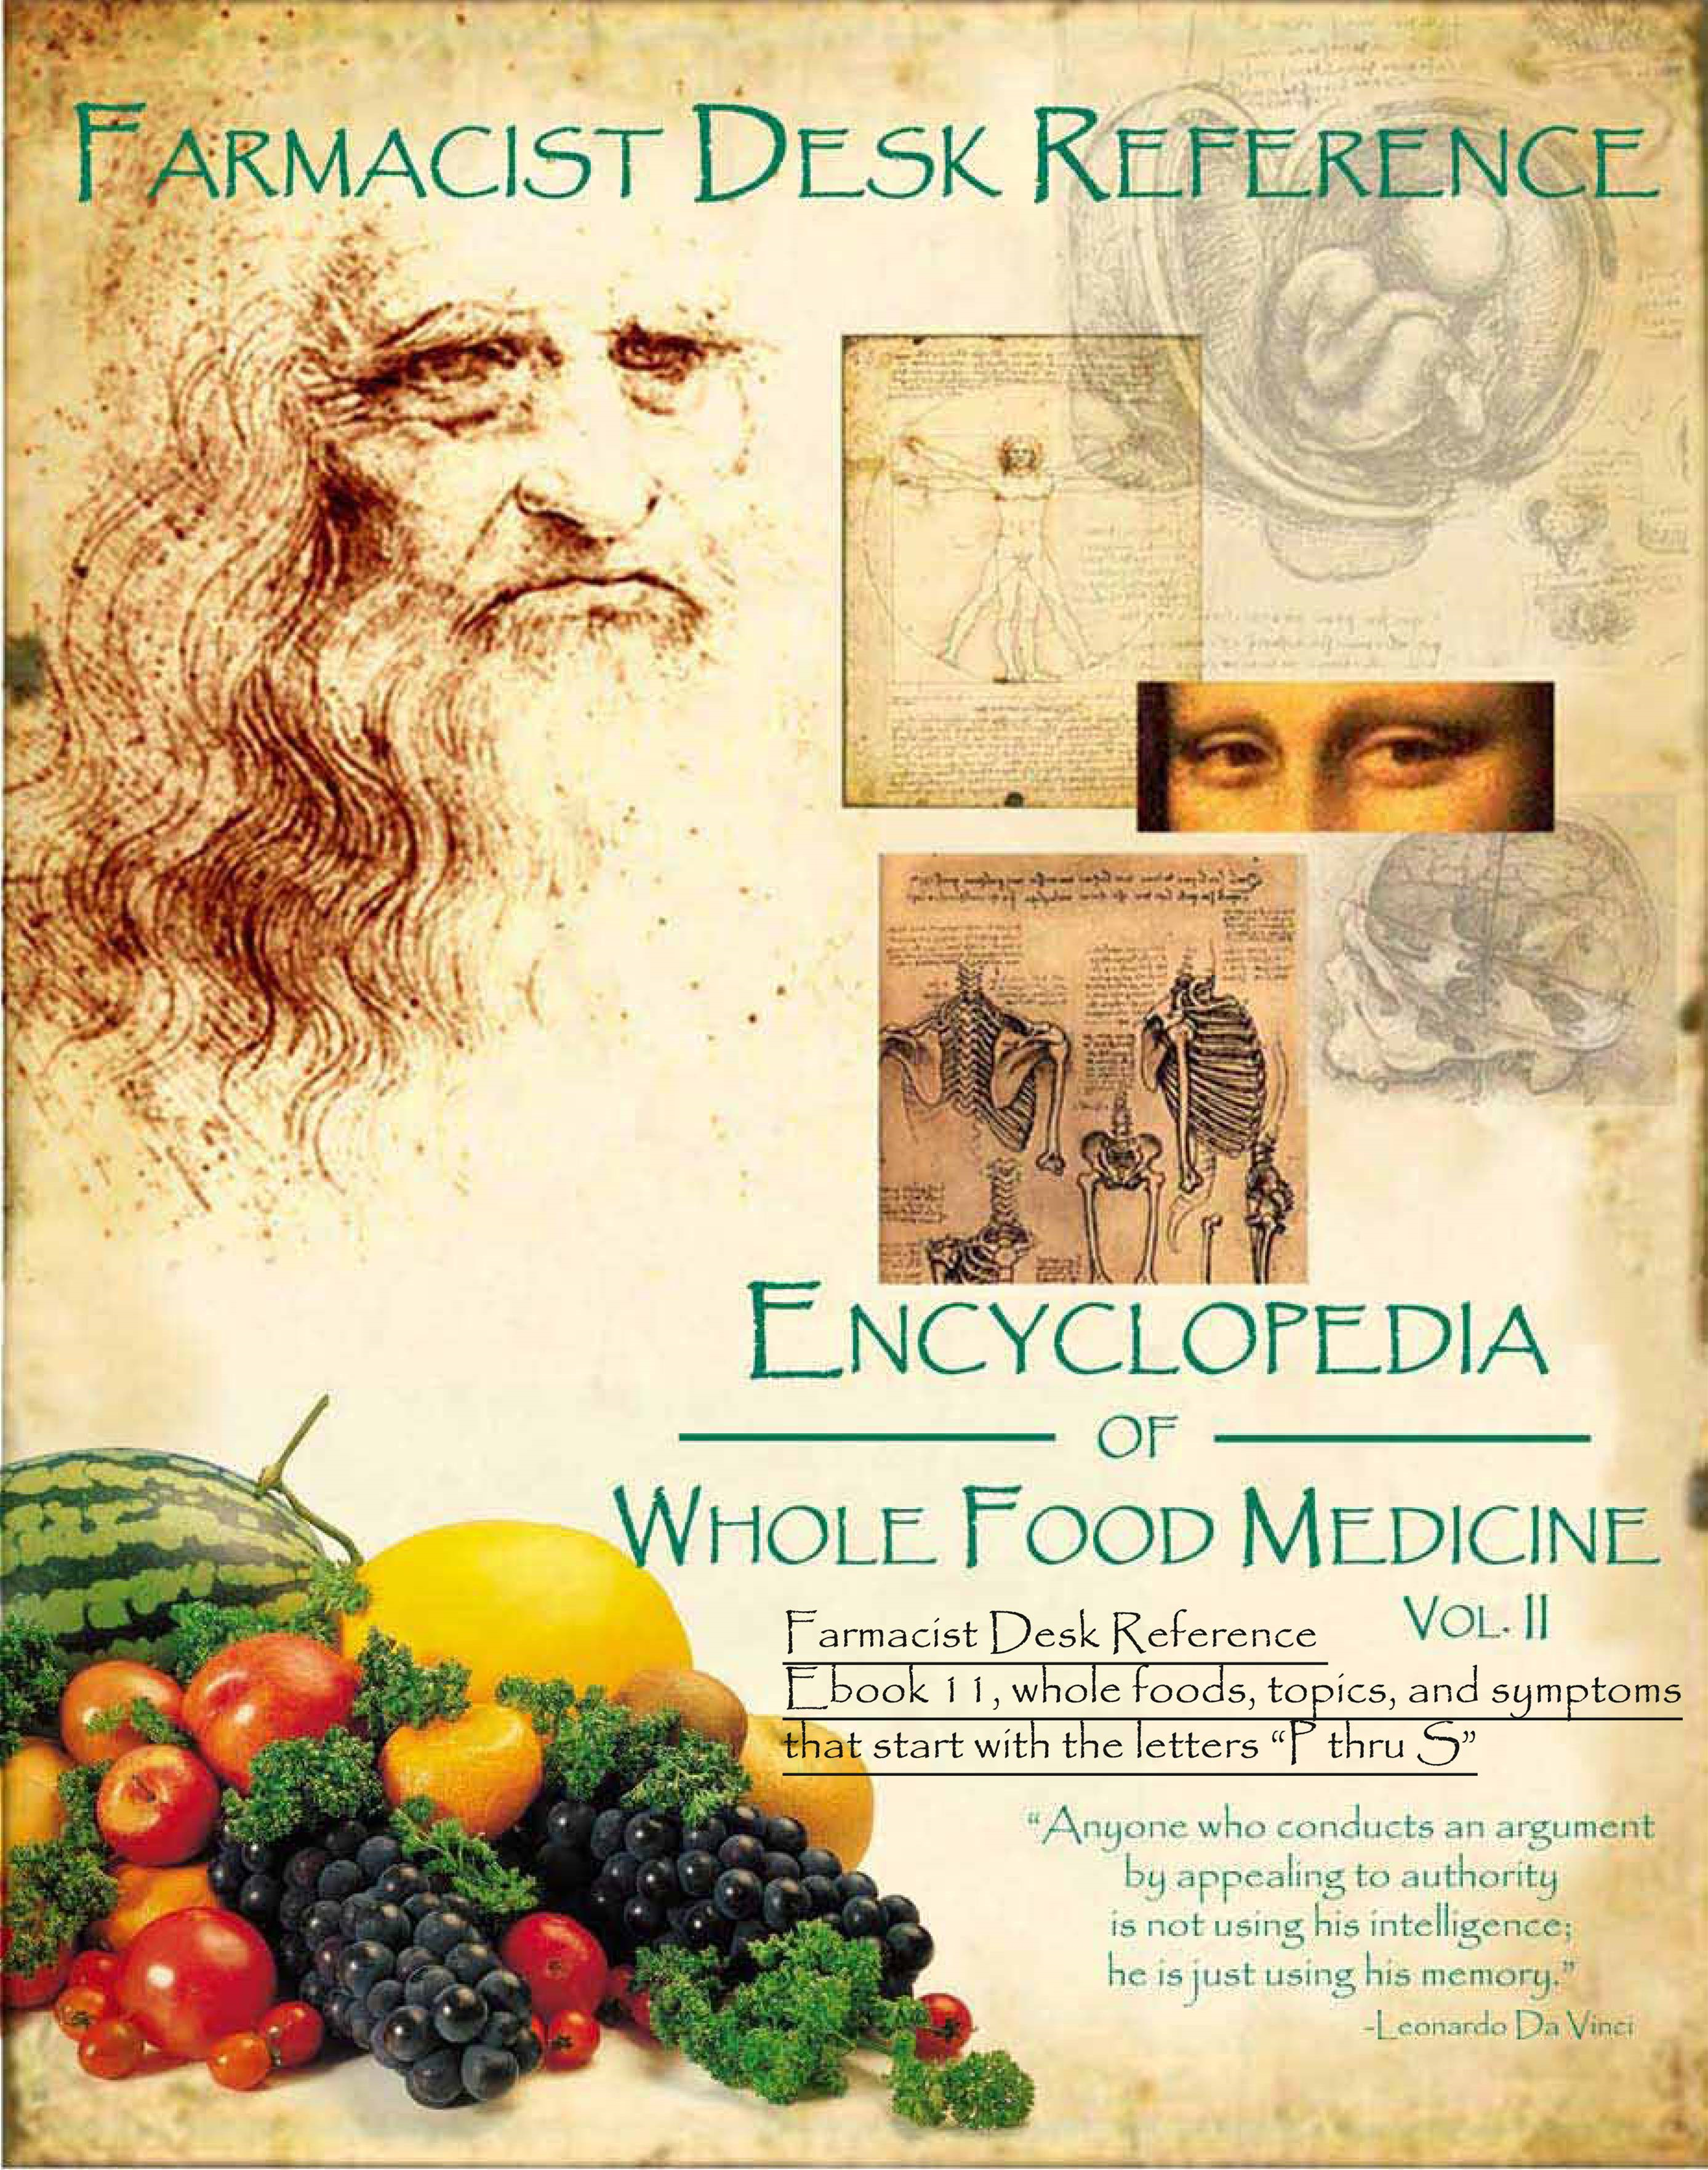 Farmacist Desk Reference Ebook 11, Whole Foods and topics that start with the letters P thru S: Farmacist Desk Reference E book series By: Don Tolman